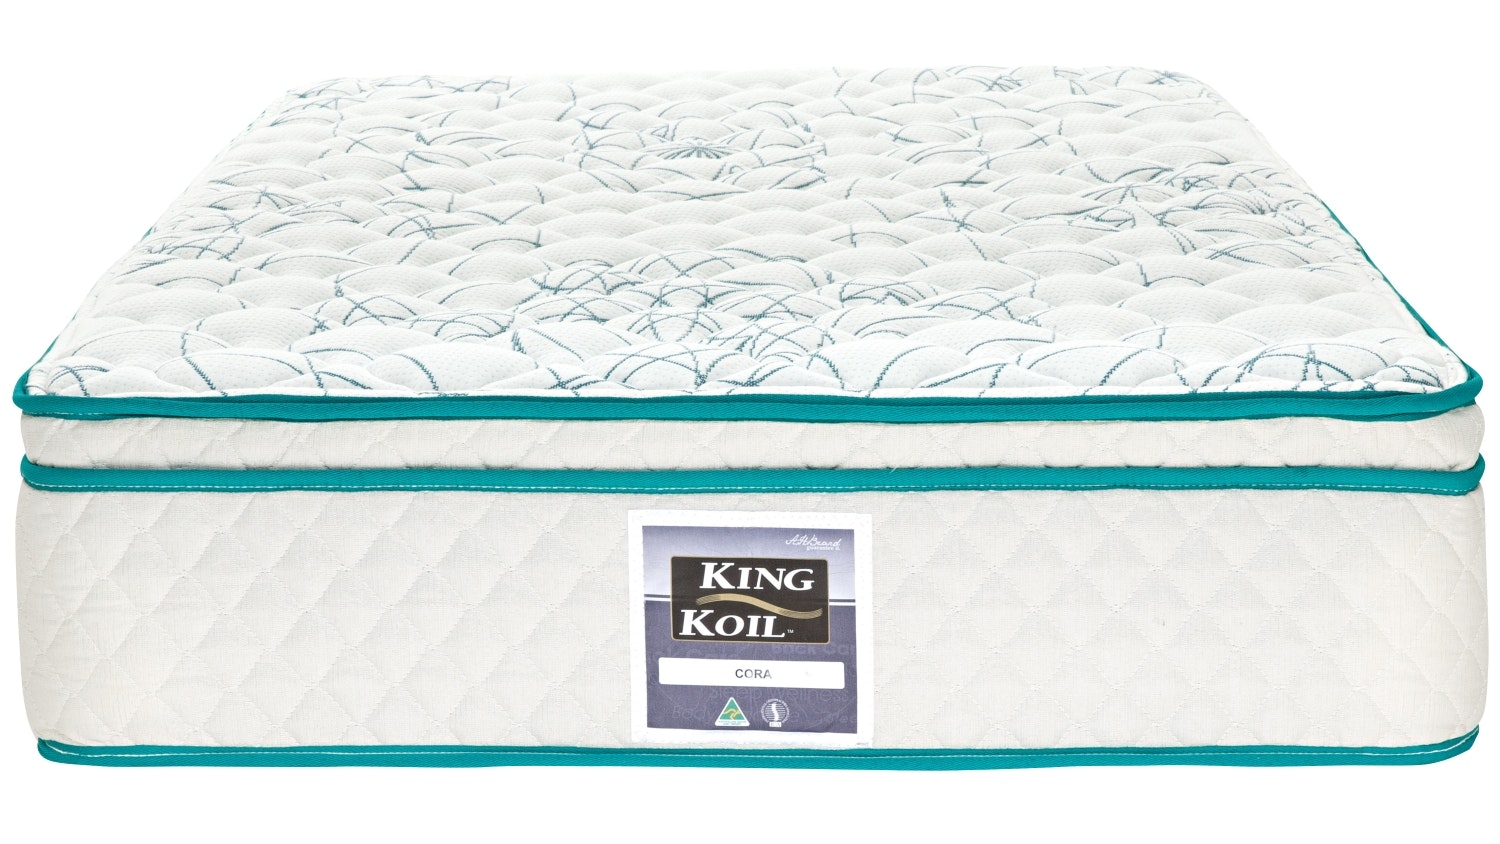 King Koil Cora Mattress